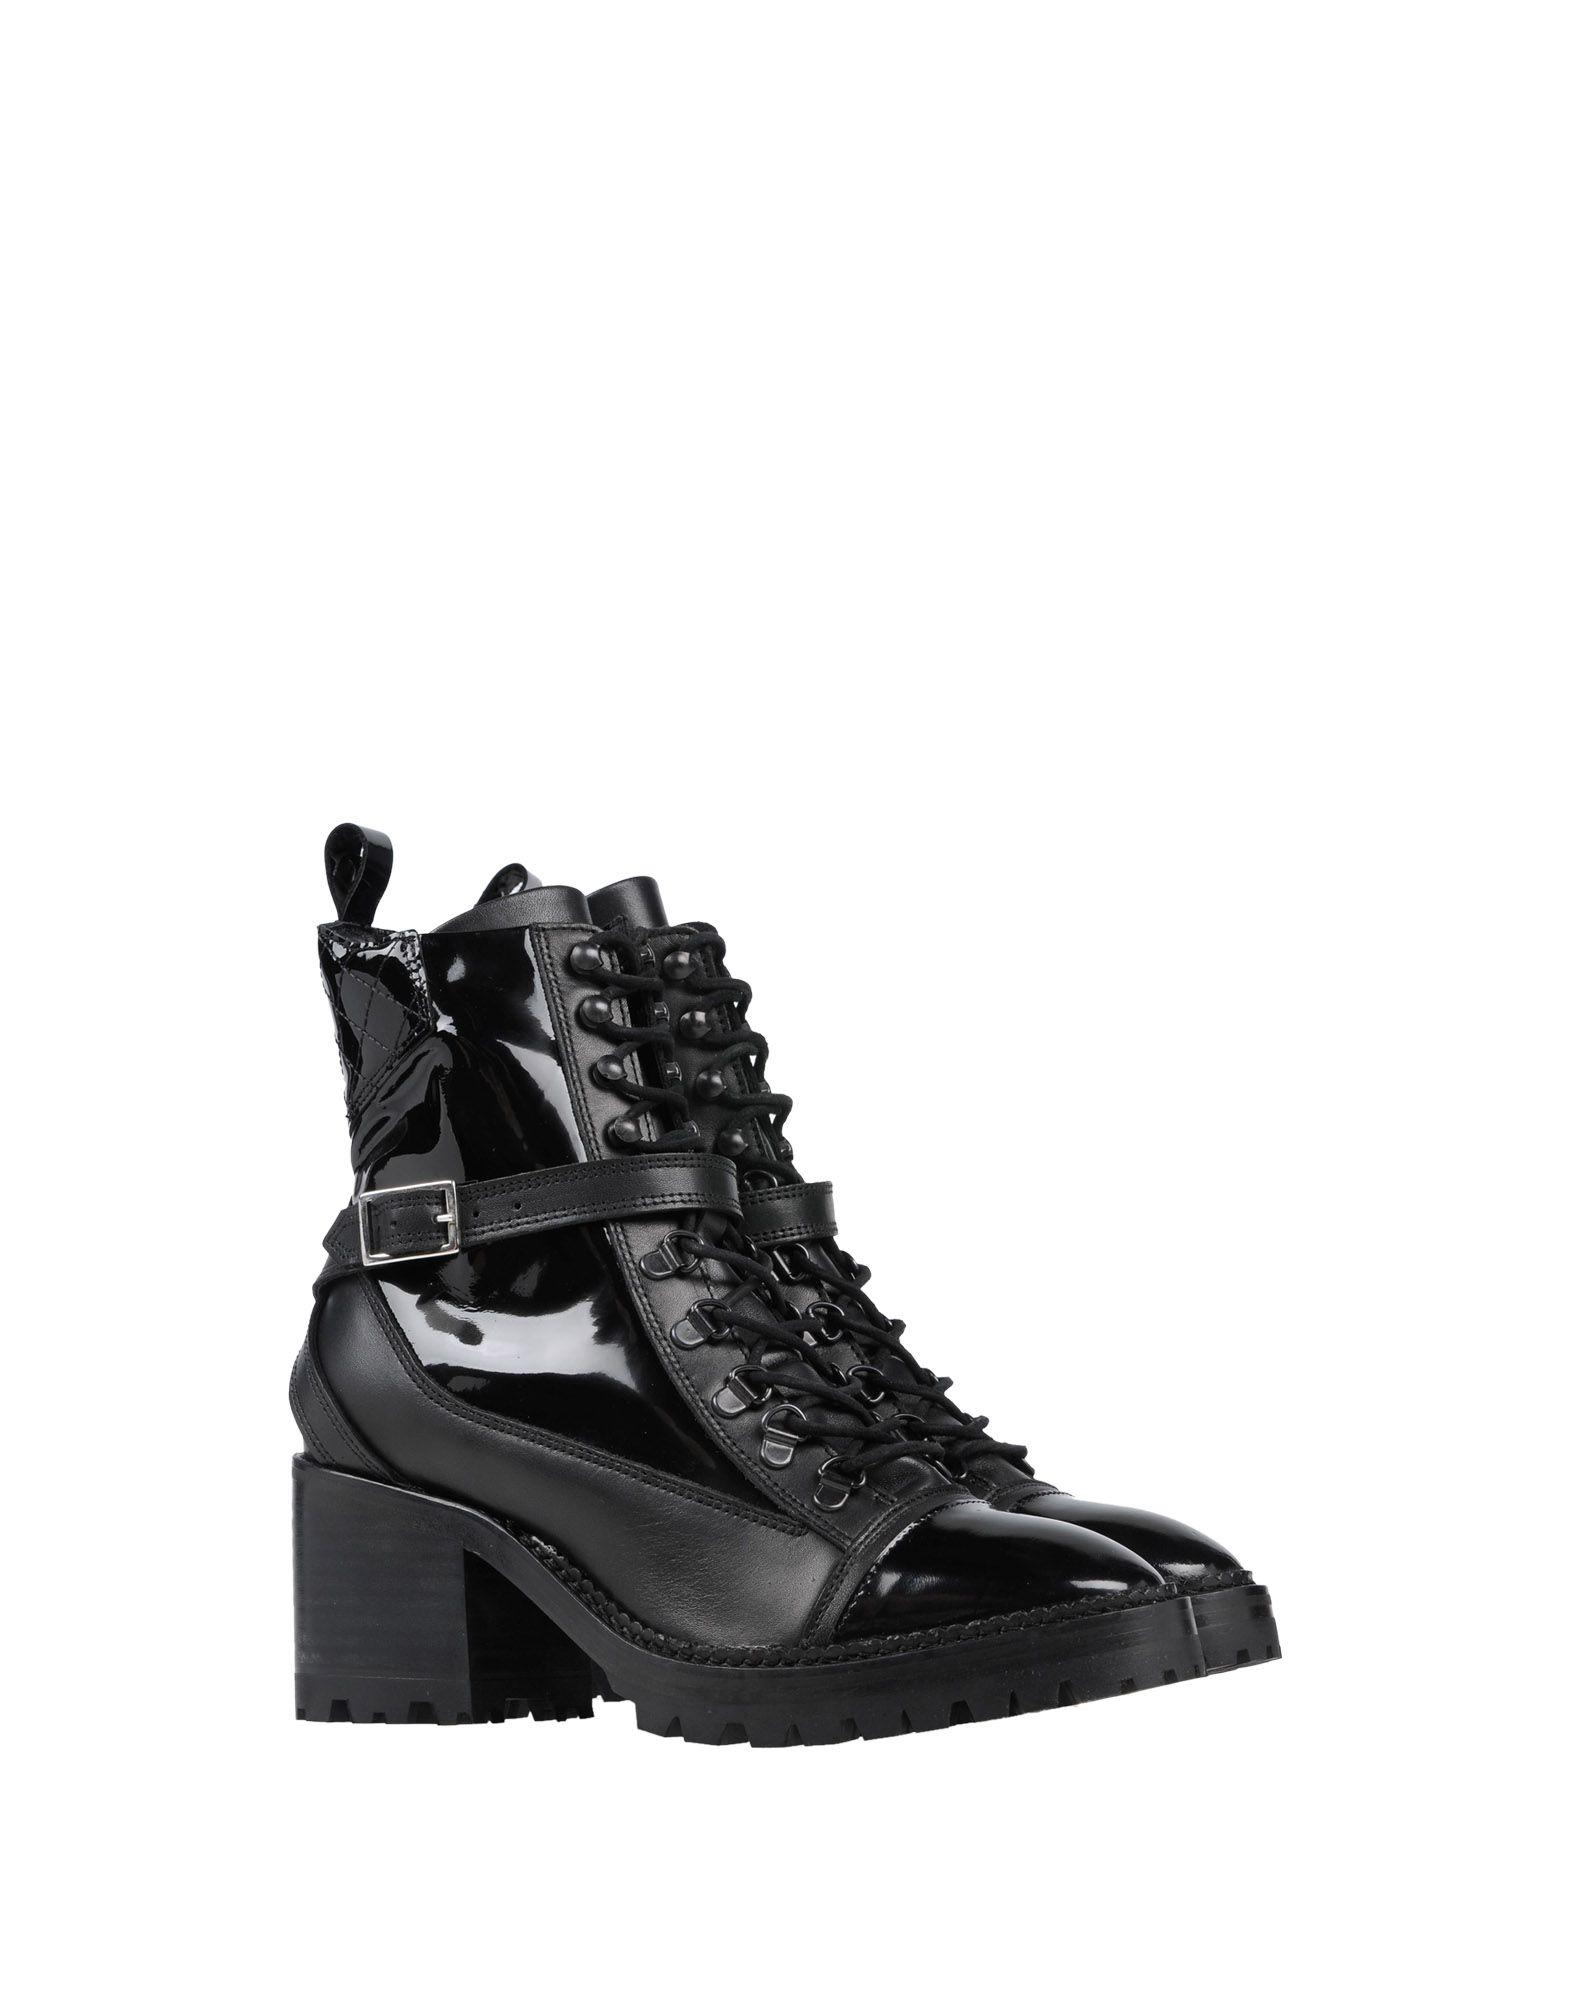 058372b92c The Kooples Ankle Boots in Black - Lyst